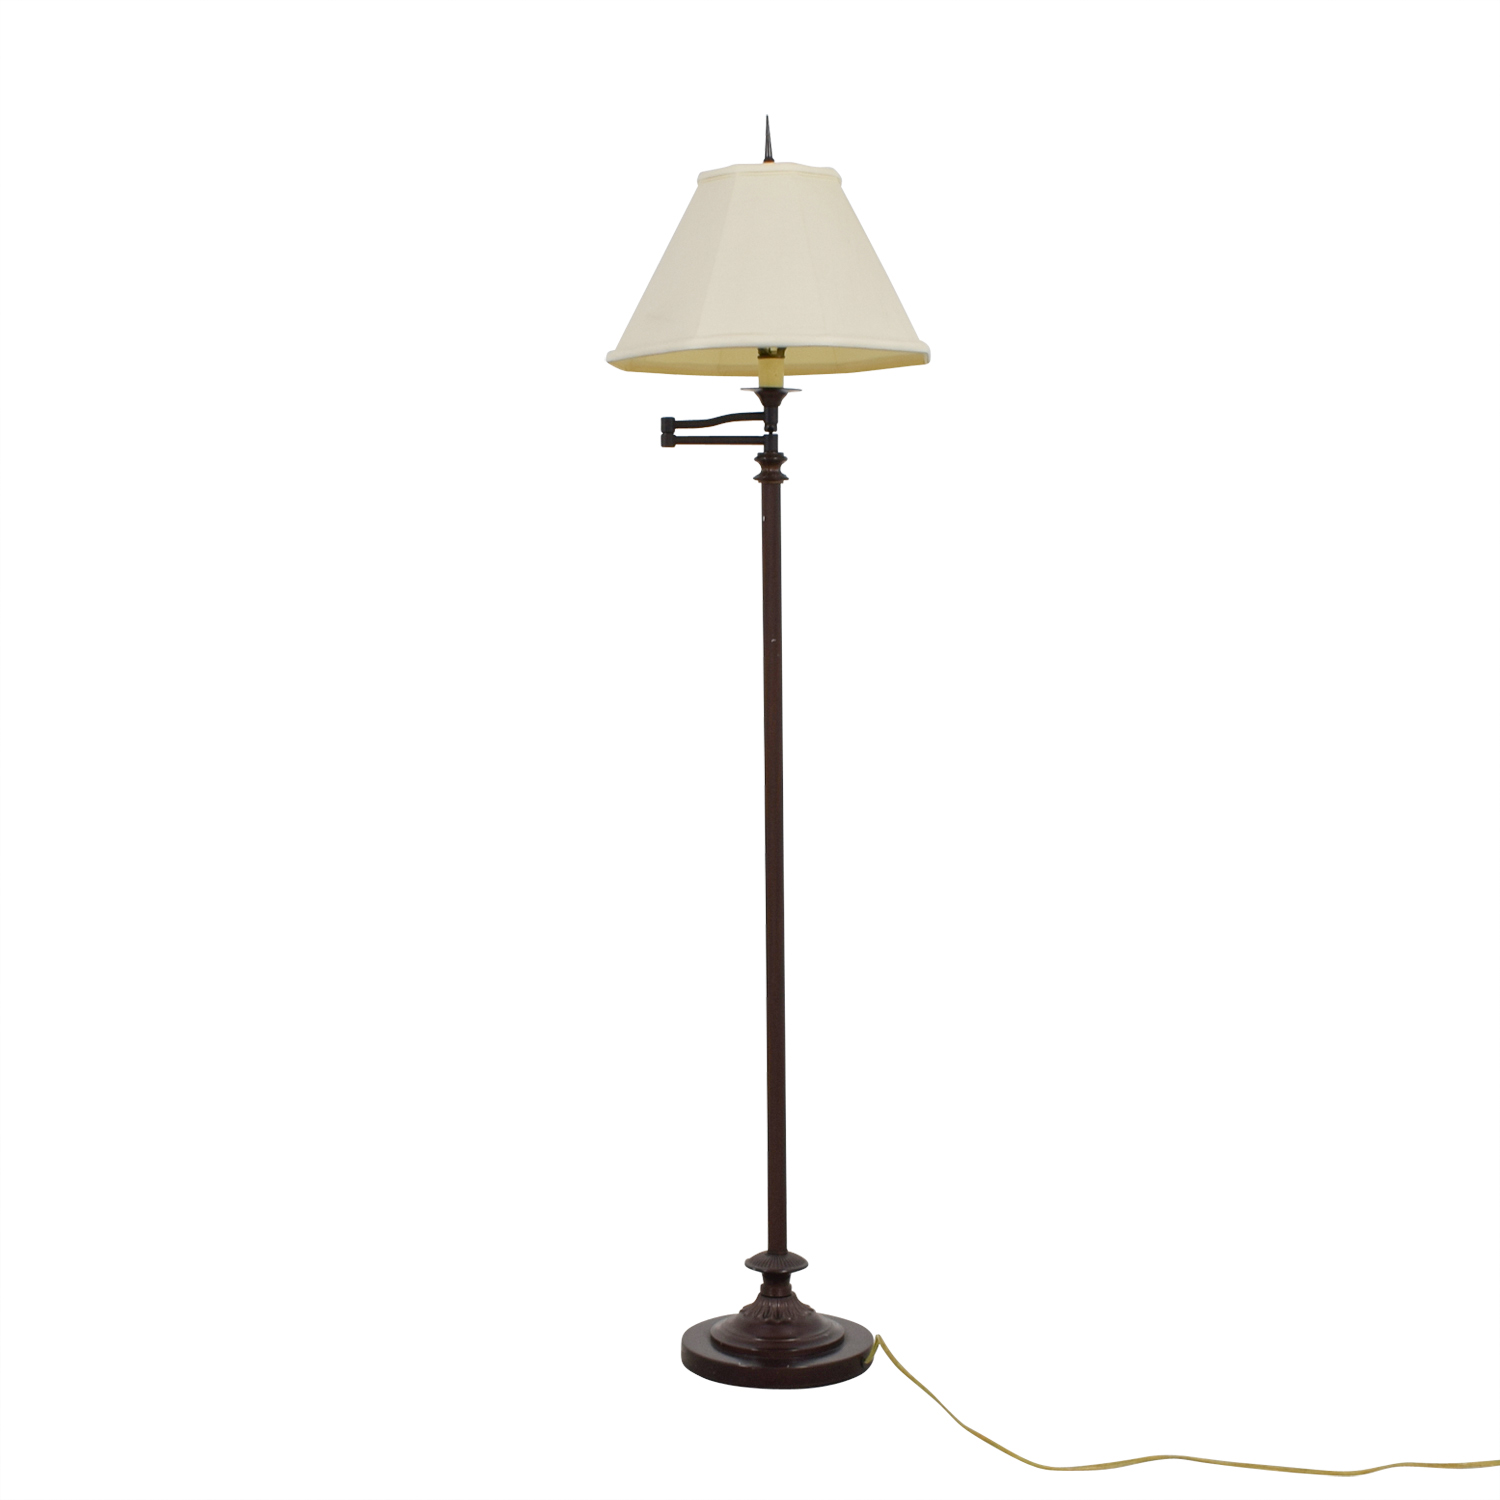 Gracious Home Gracious Home Brown Standing Lamp nyc